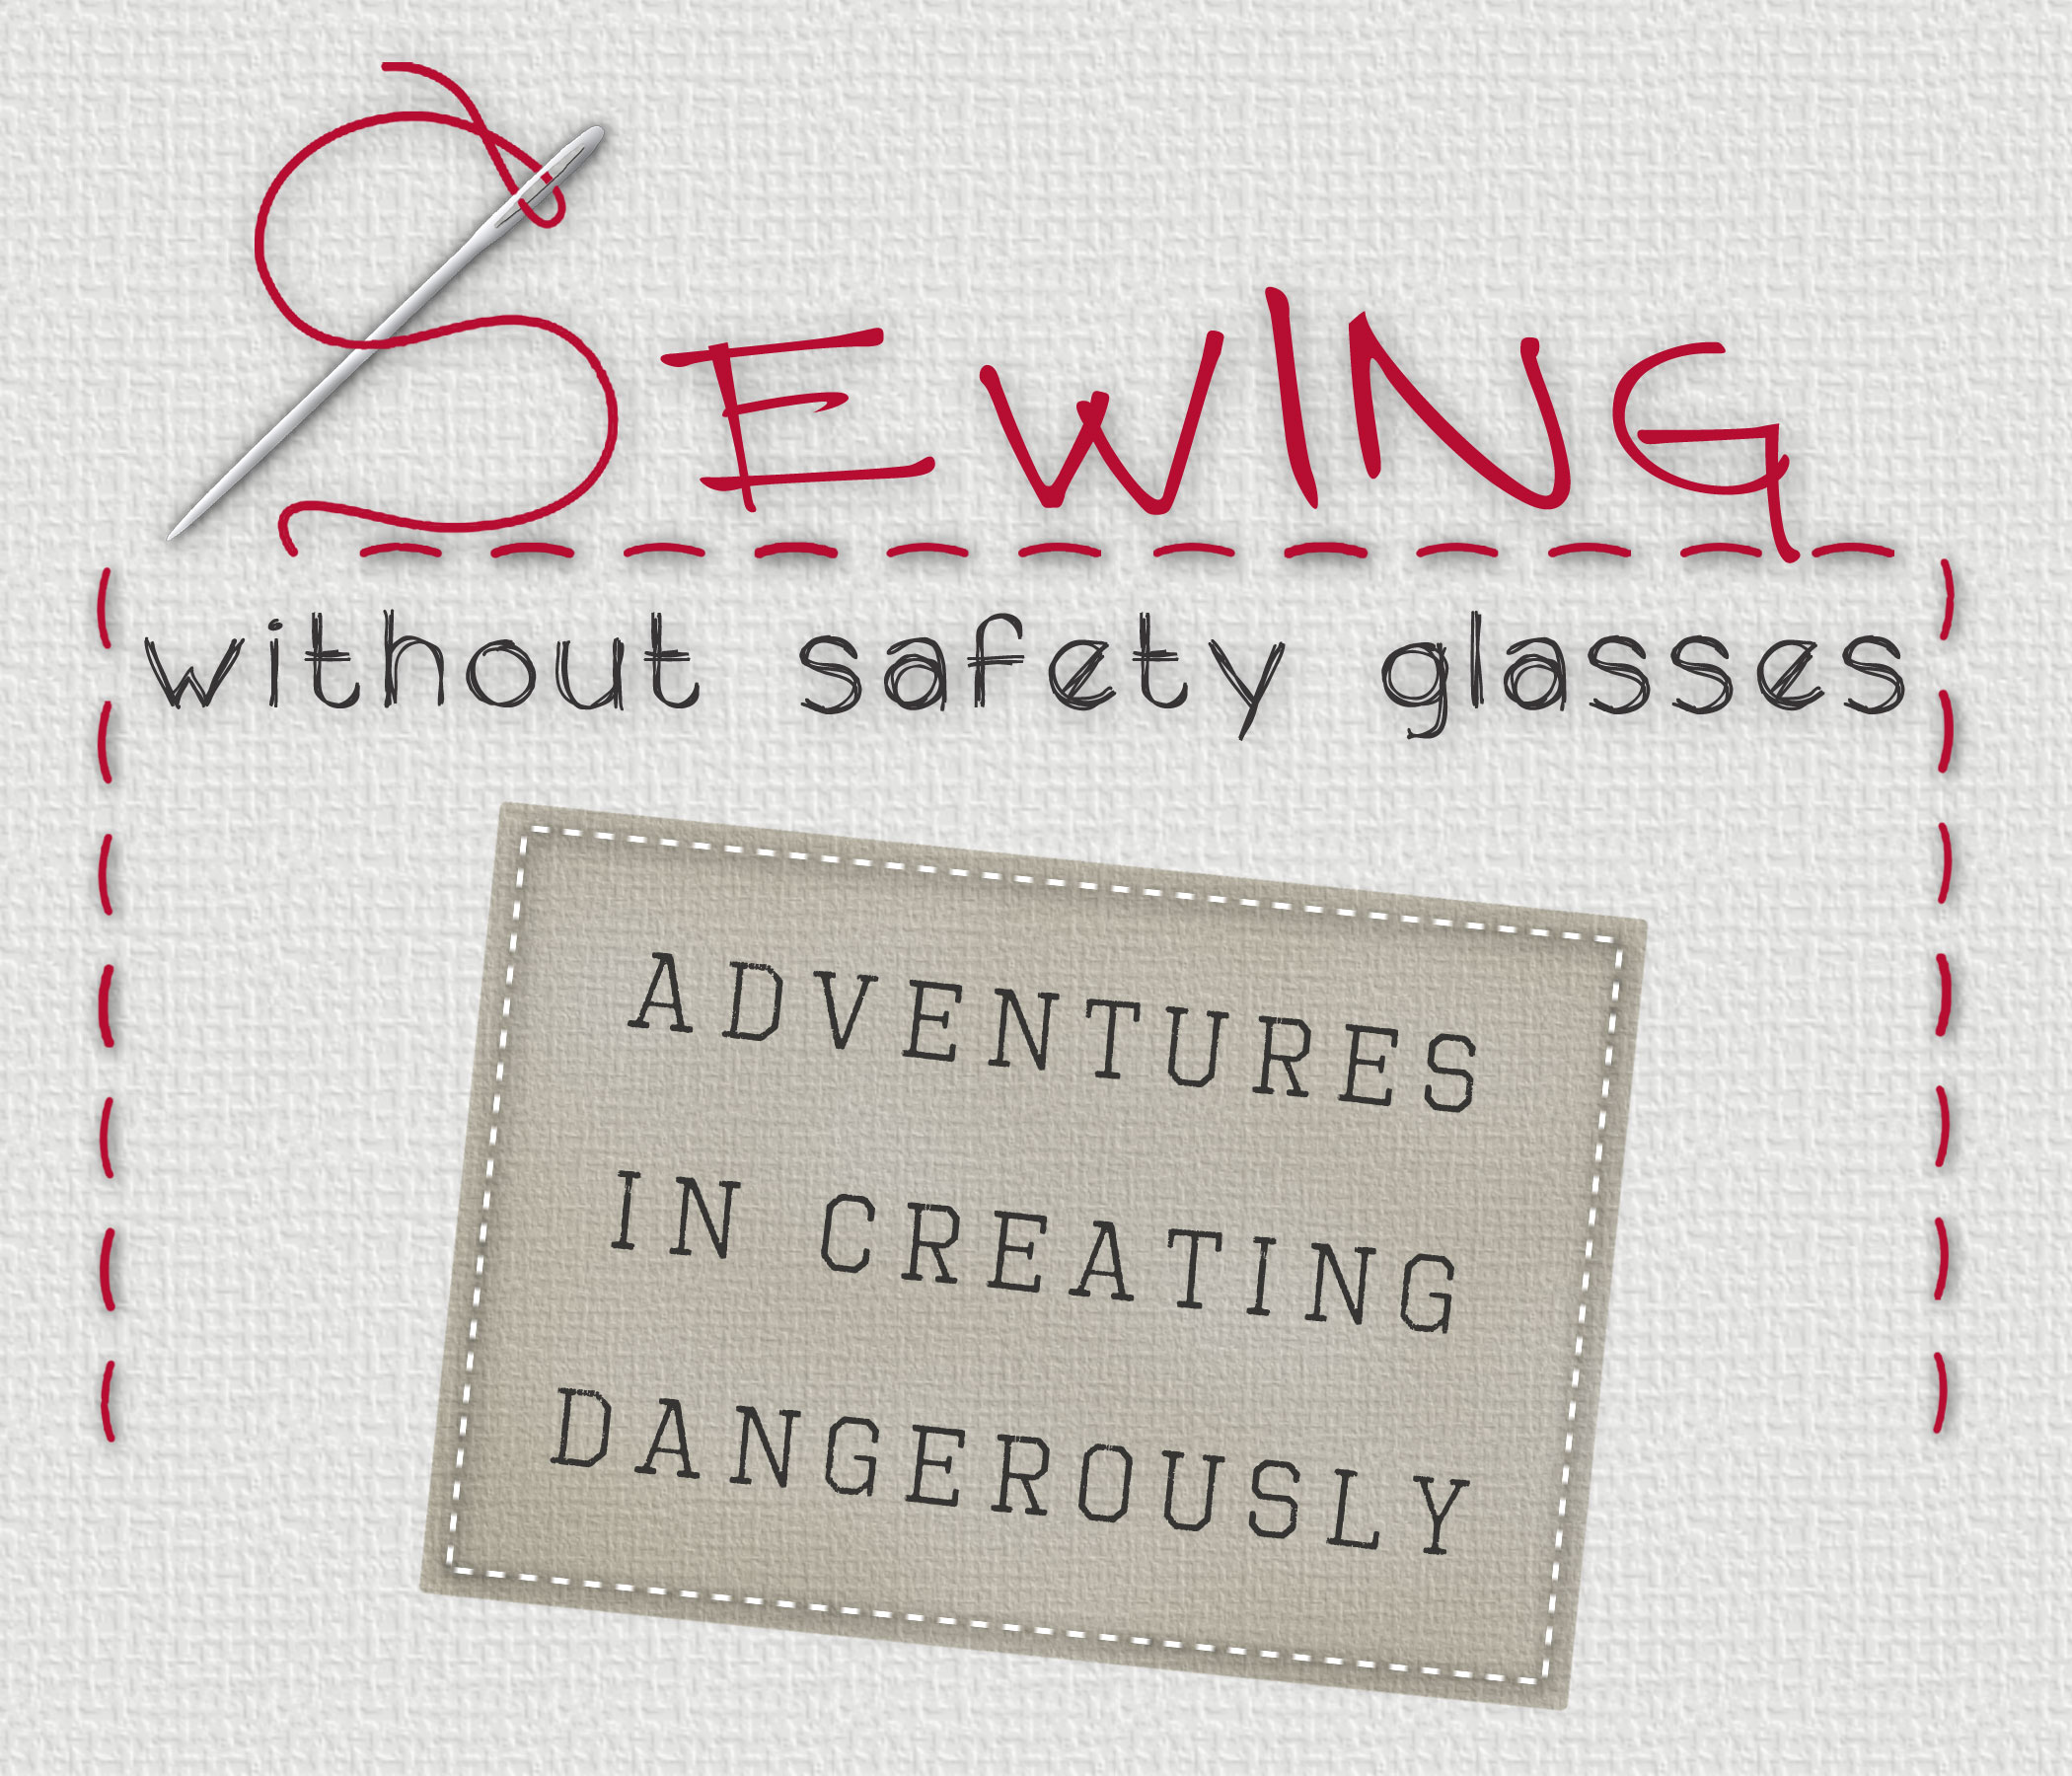 Sewing Without Safety Glasses: Adventures in Creating Dangerously